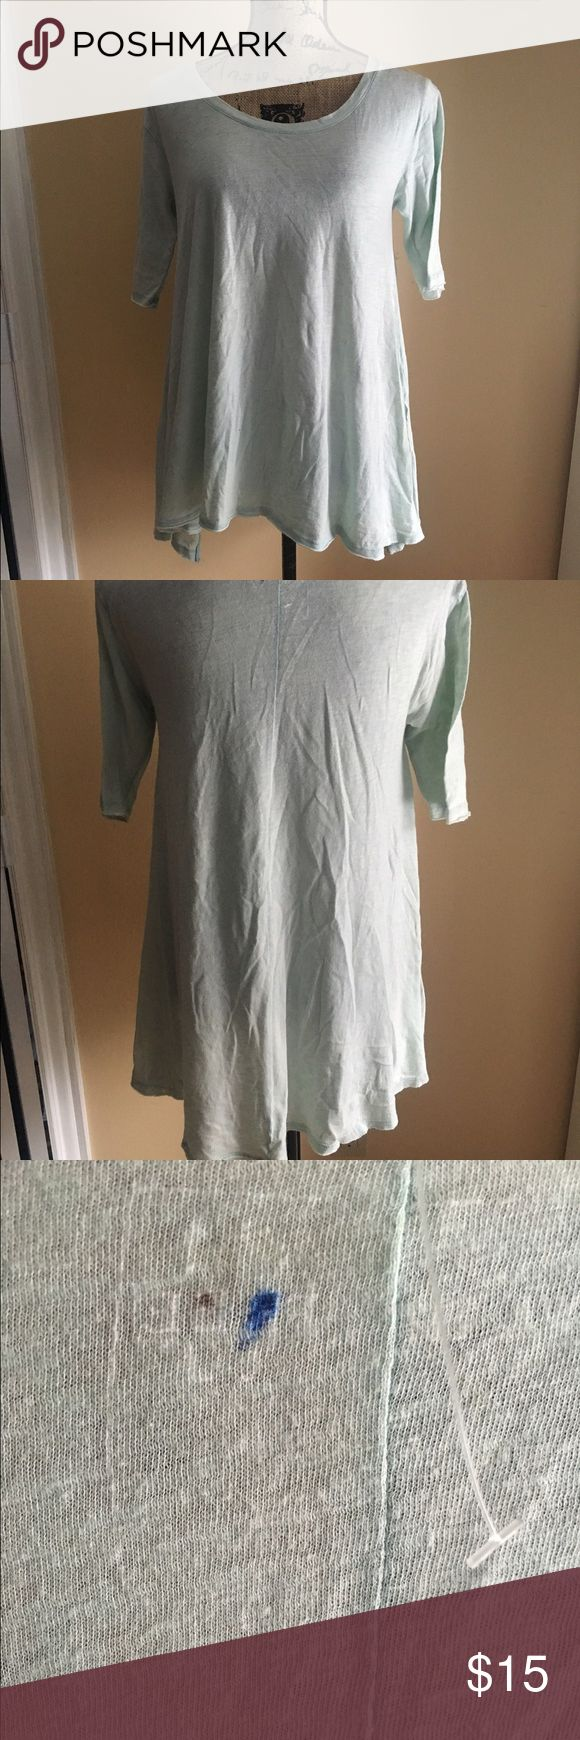 Free People Oversized tee shirt Free People Mint Green oversize tee with slits on side. NWOT. Has a blue dot on back Free People Tops Tees - Short Sleeve